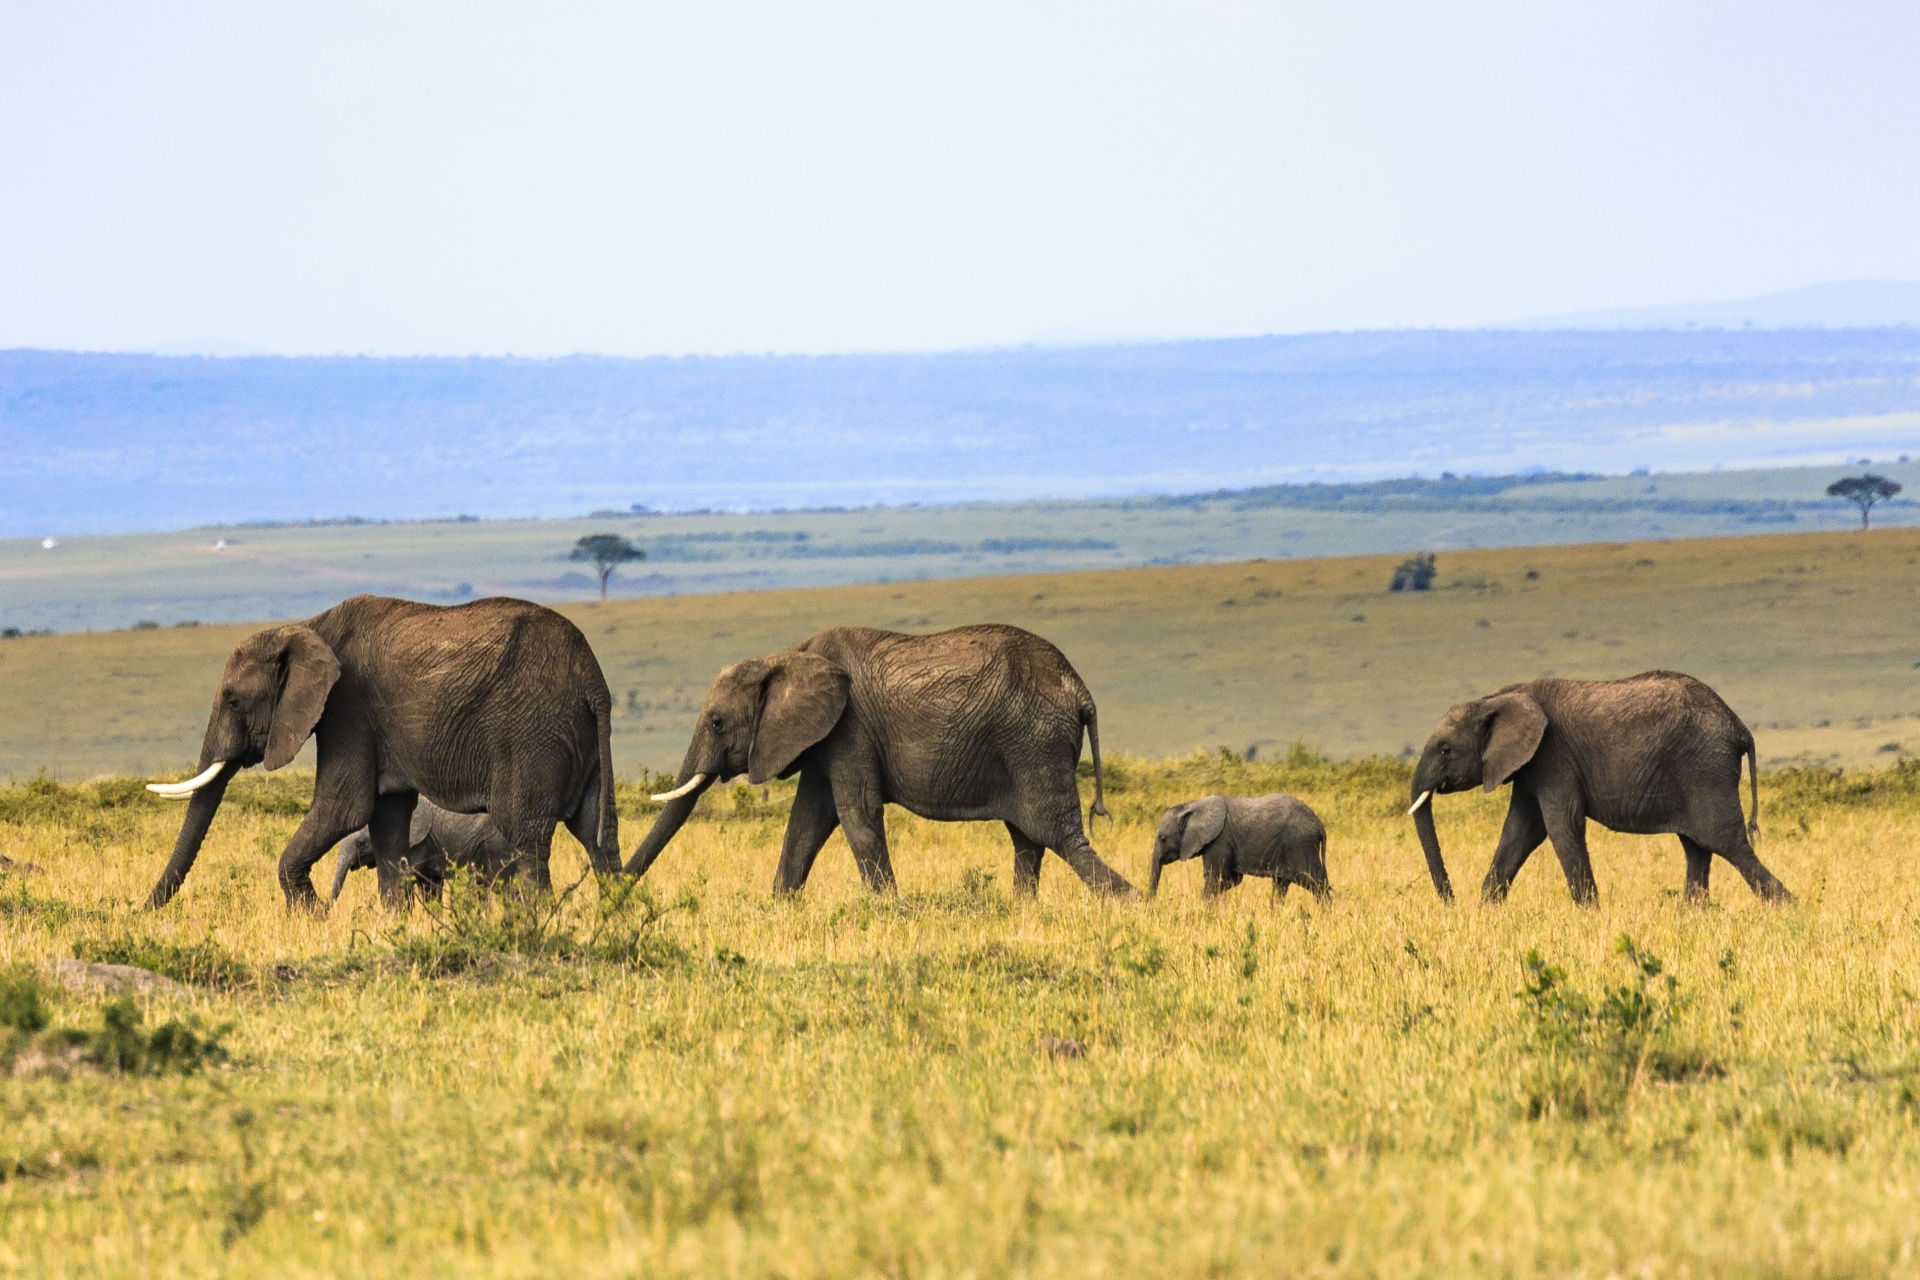 Baby elephant in field with other elephants